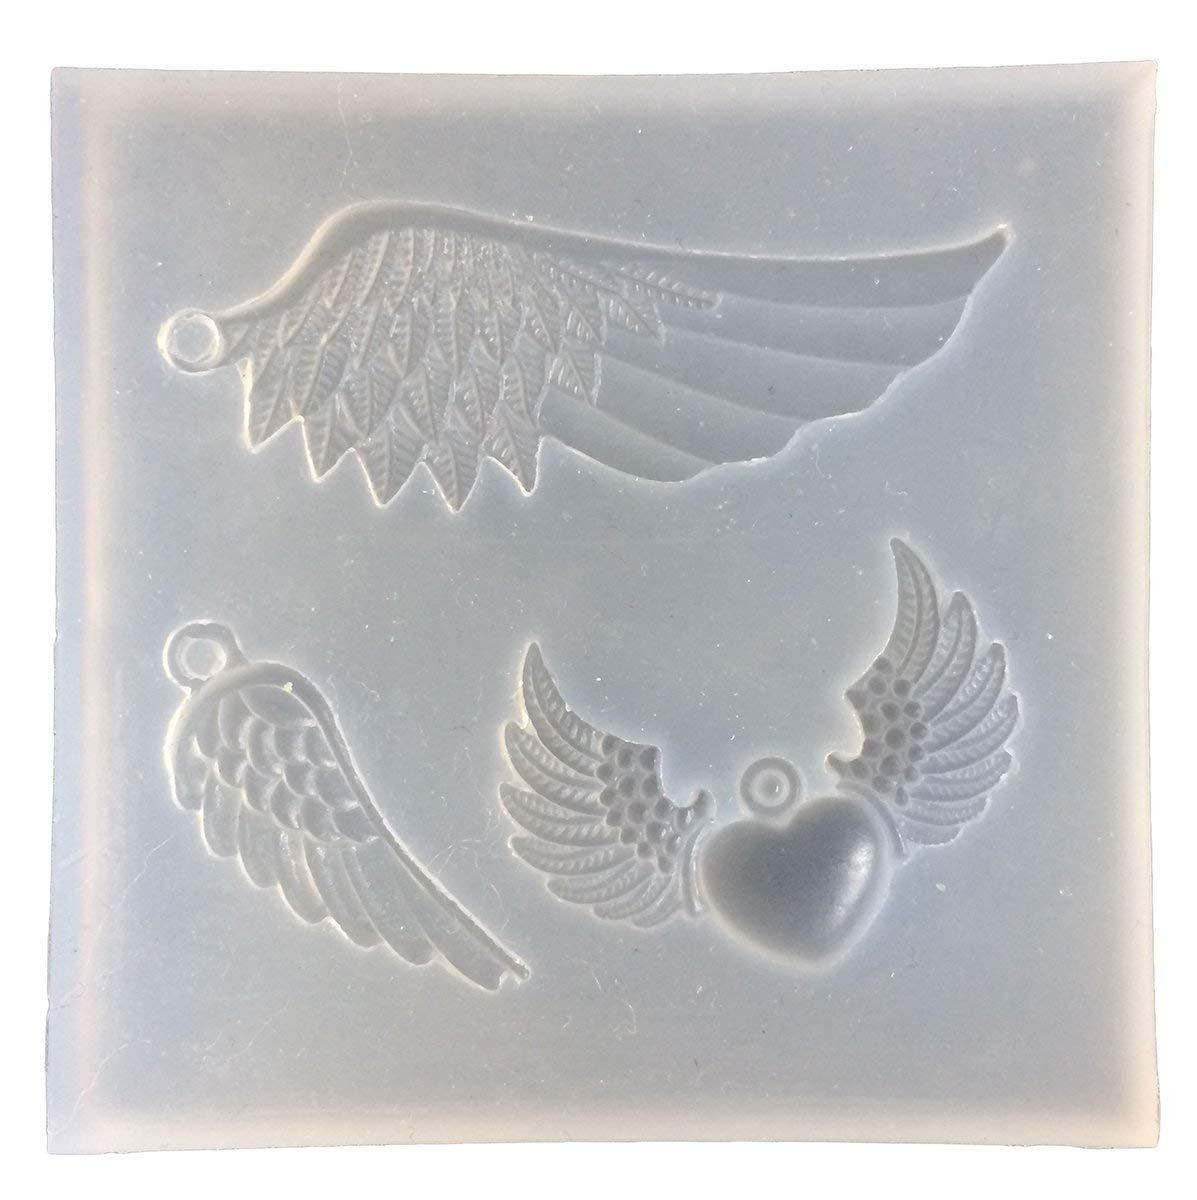 DIY Craft Jewelry Making Resin Casting Mould Silicone Pendant Mold Angel Wing Tools